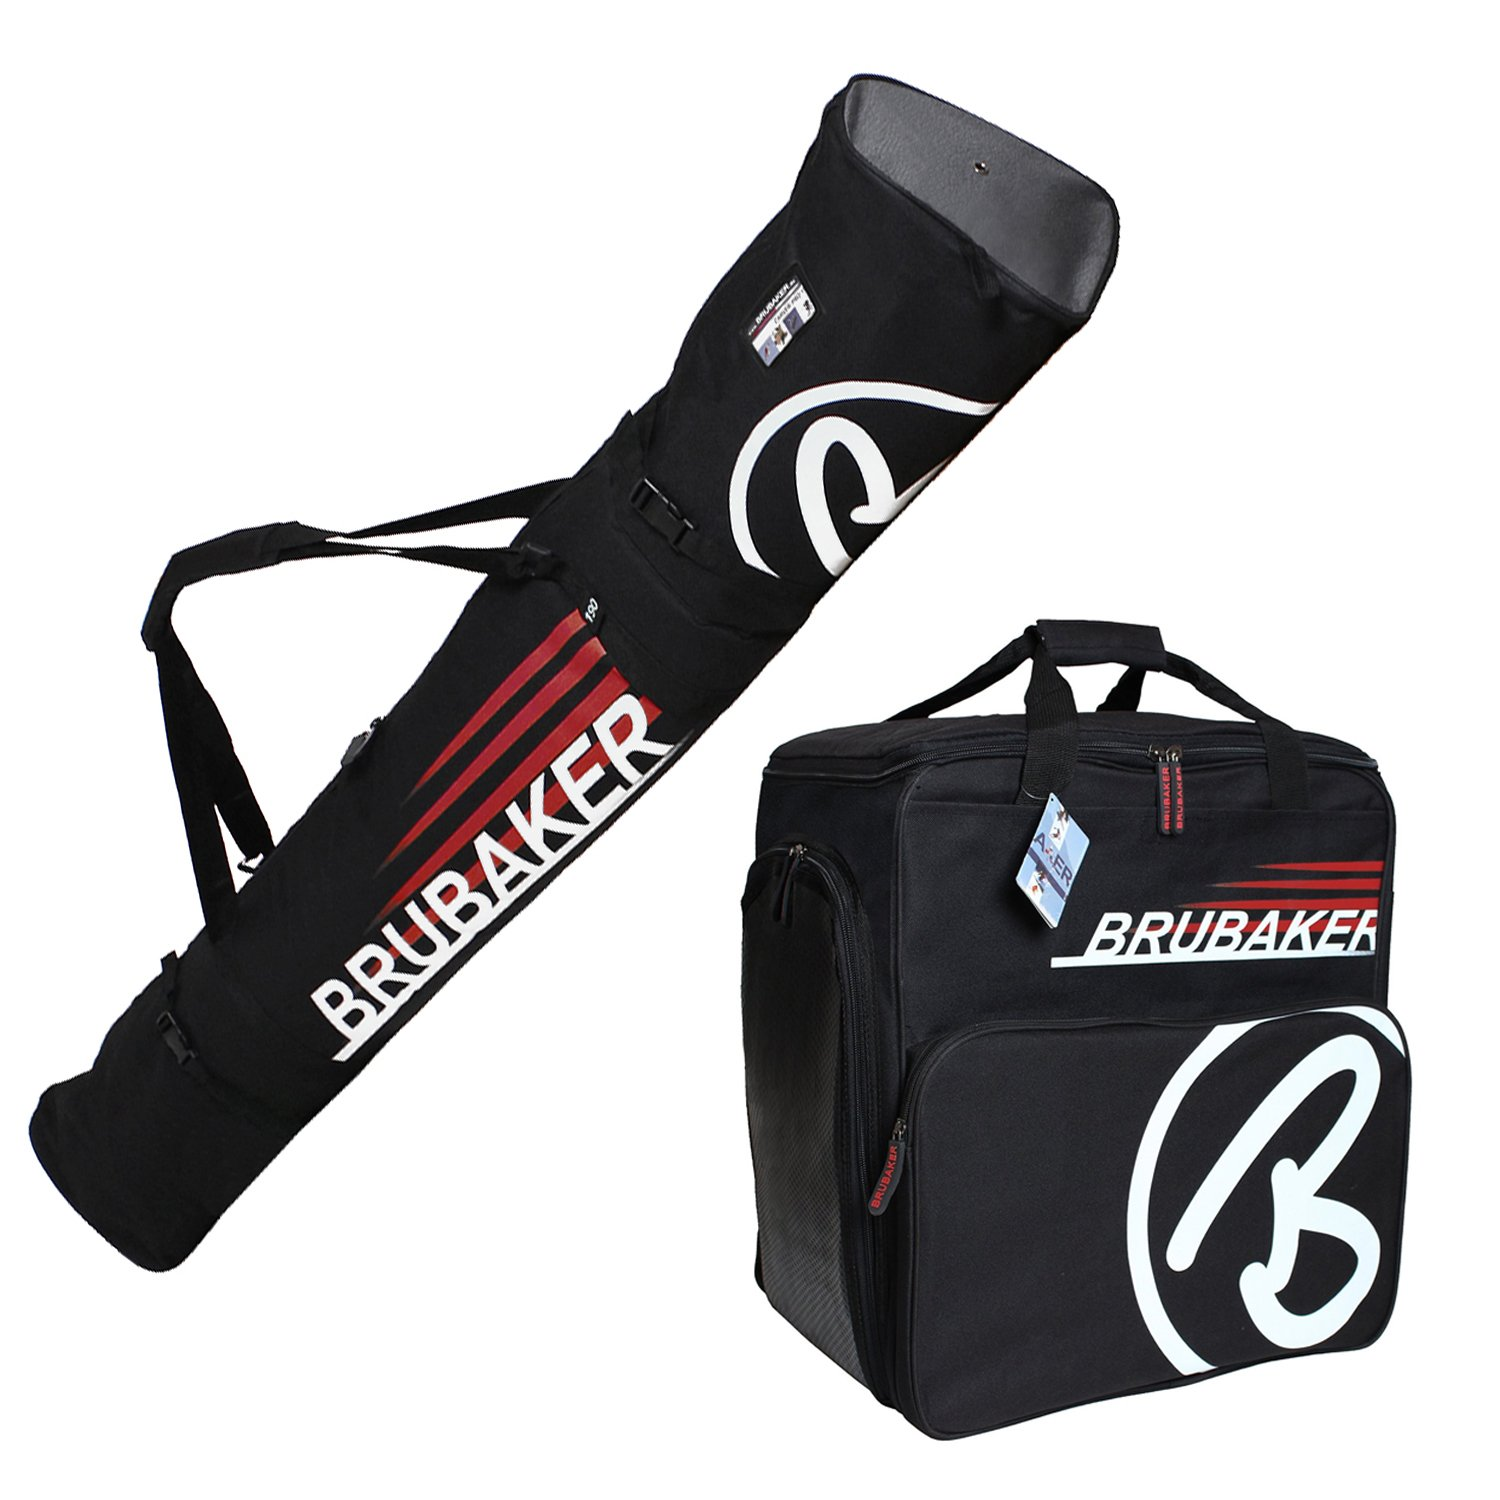 HENRY BRUBAKER ''Champion'' Combo Ski Boot Bag and Ski Bag for 1 Pair of Ski up to 190 cm, Poles, Boots and Helmet - Black Red